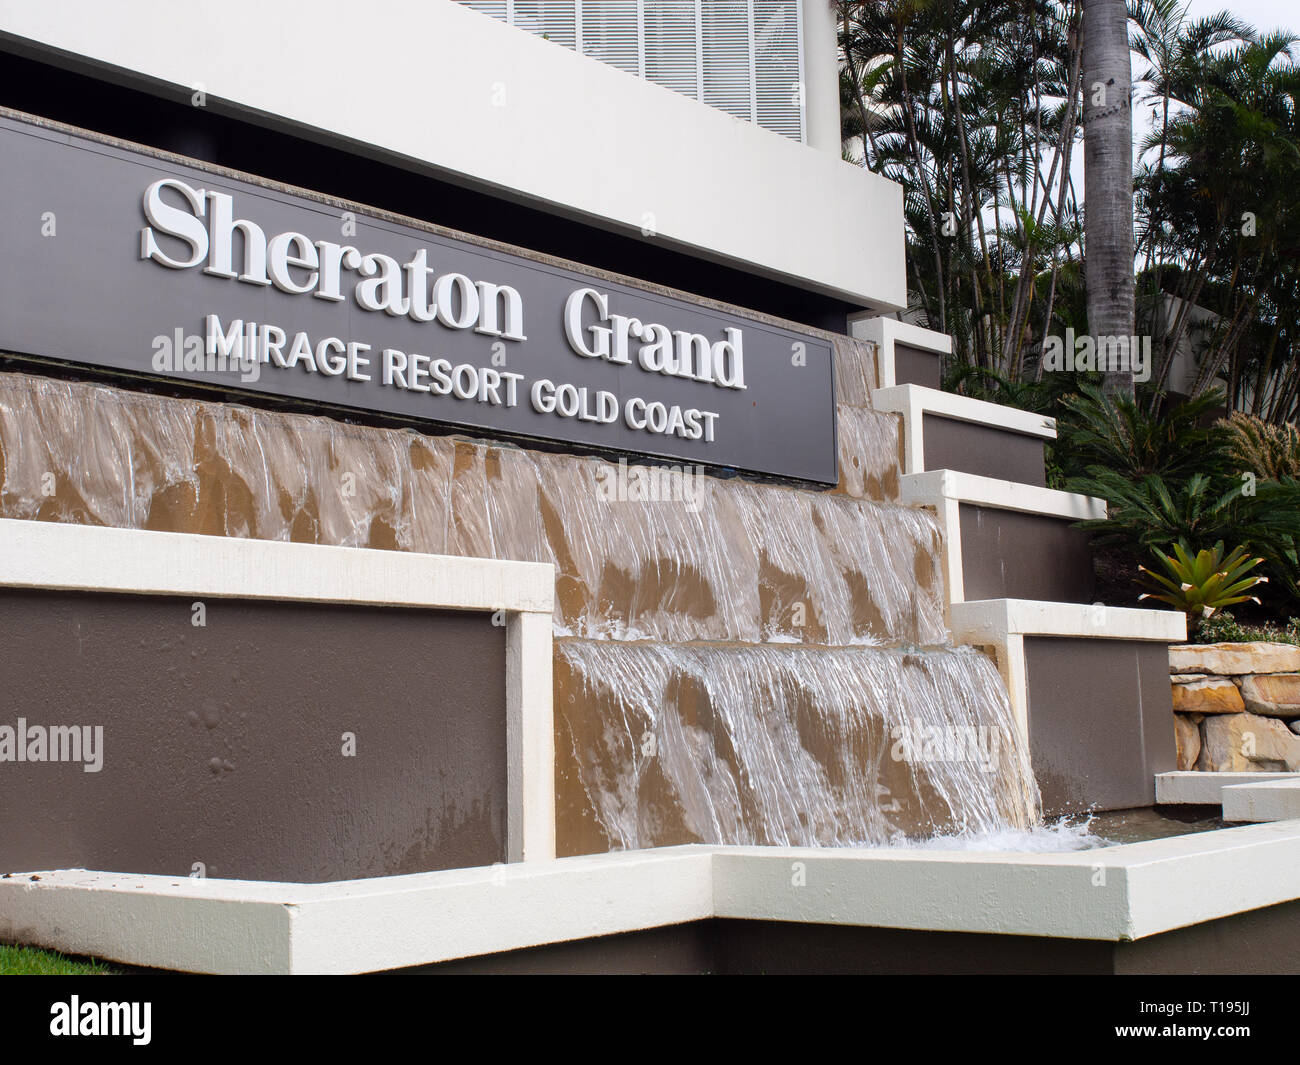 Water Feature At The Sheraton Grand Mirage Resort Gold Coast